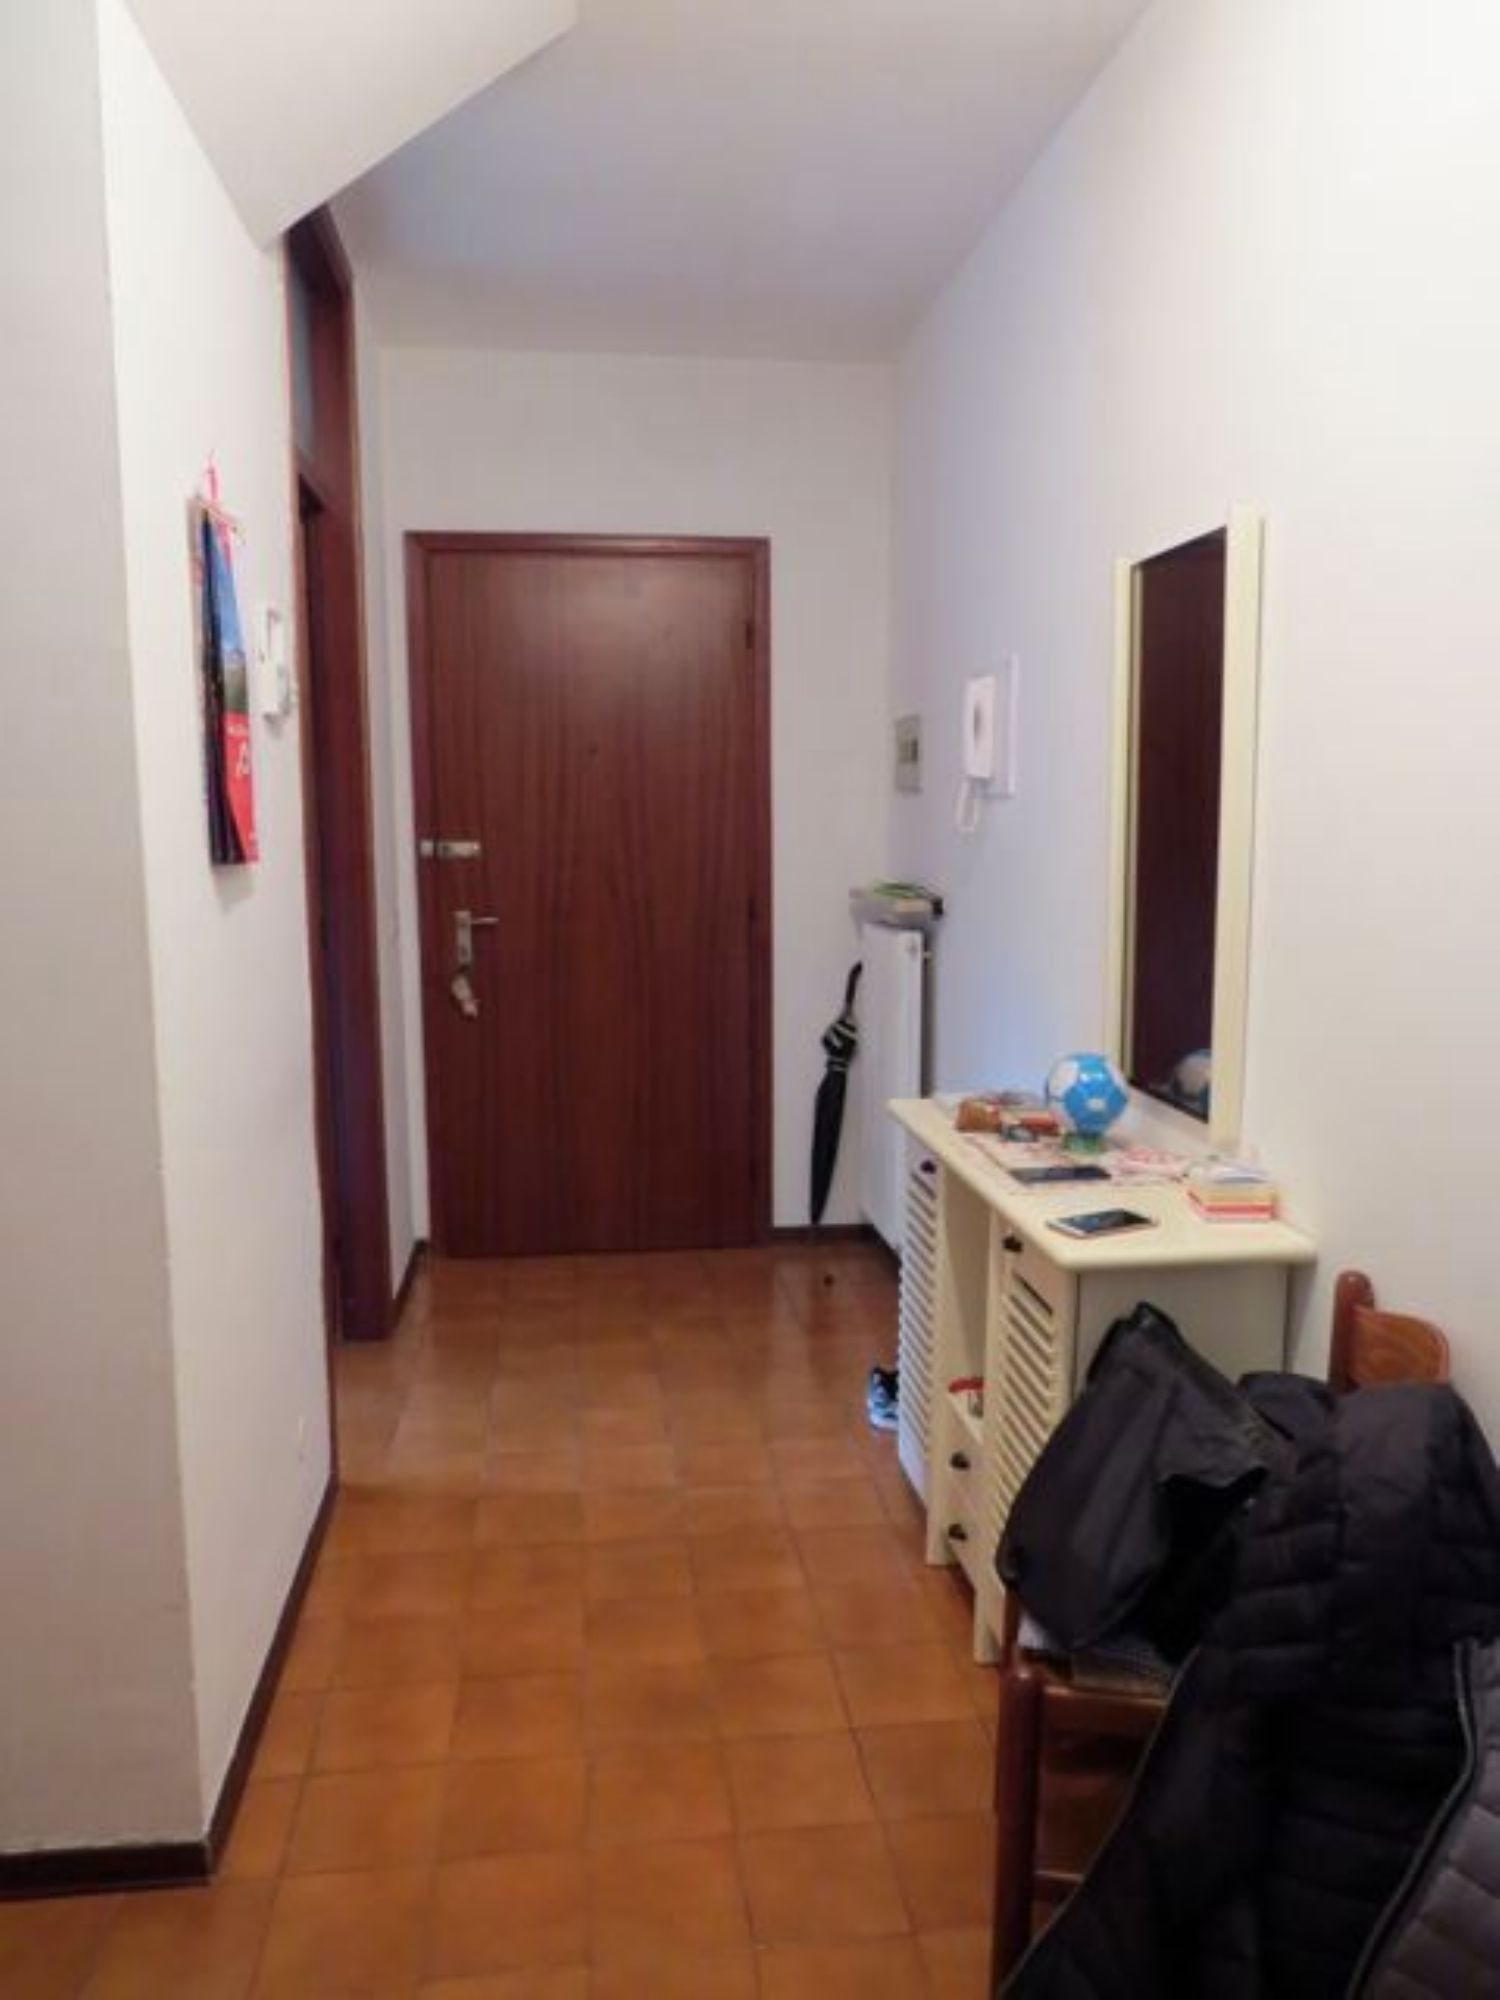 Duplex in Affitto a Udine